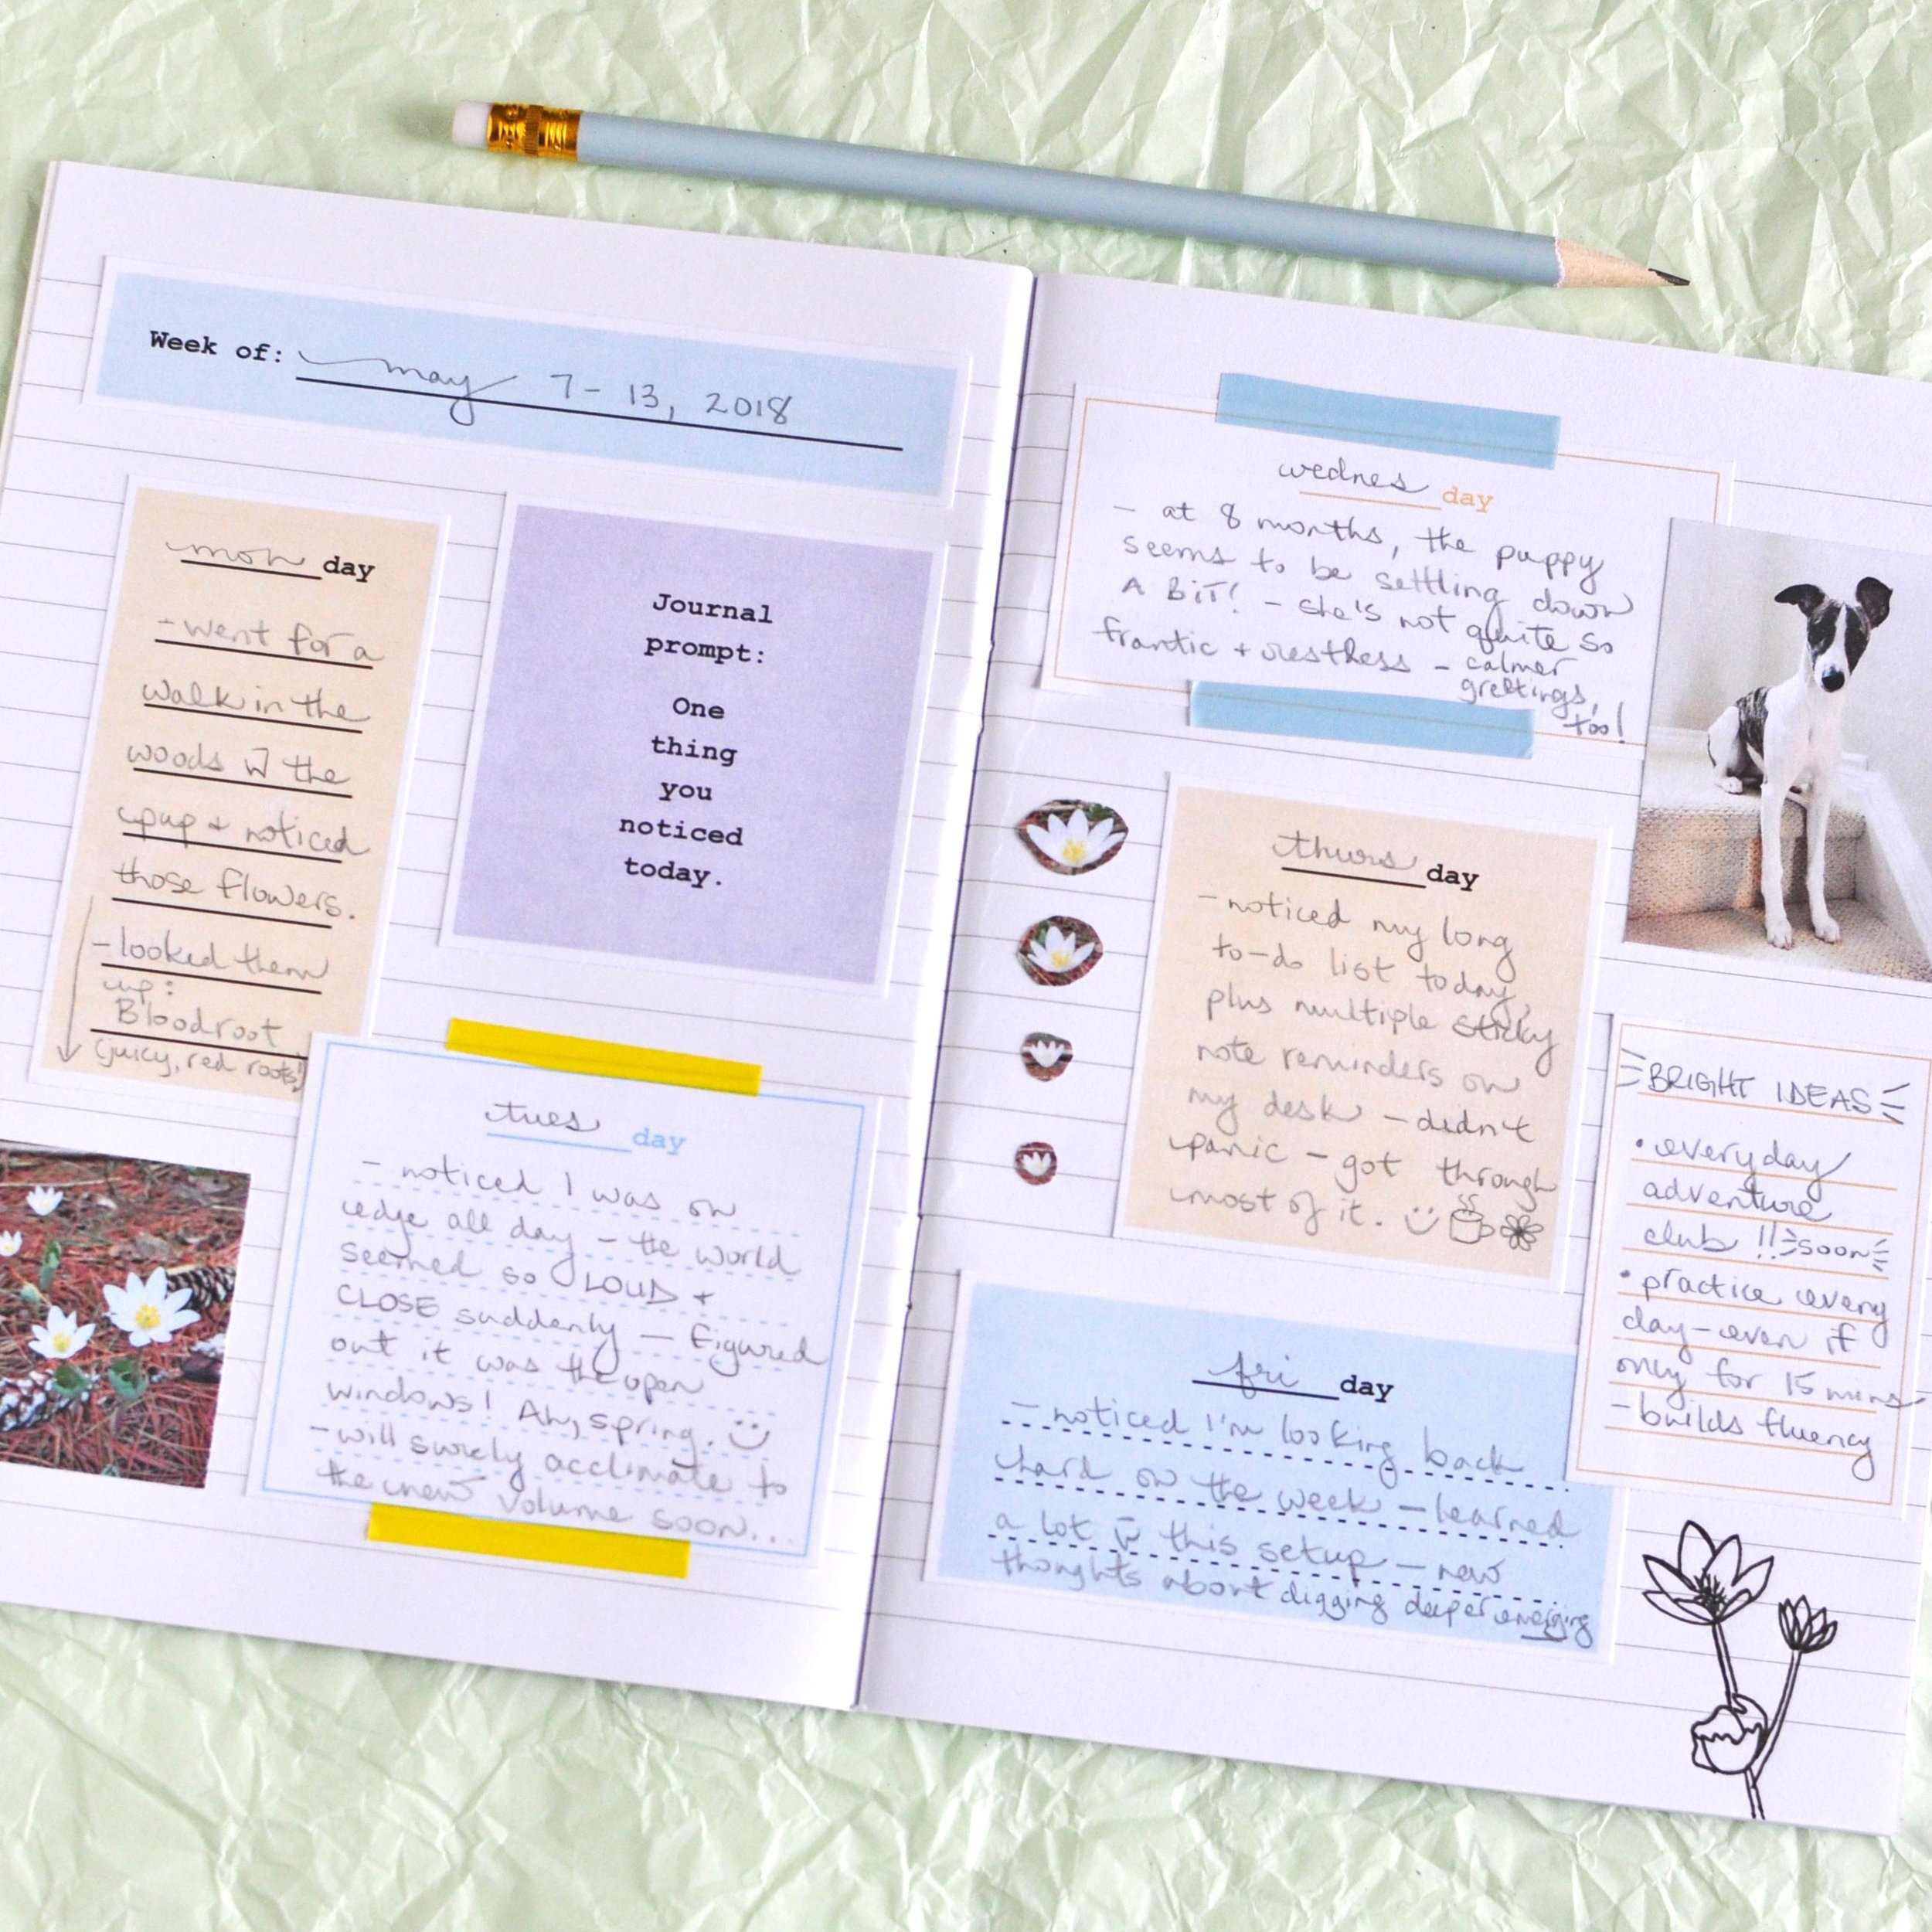 11-05-2018-Printable-journal-page-by-Christie-Zimmera.jpg